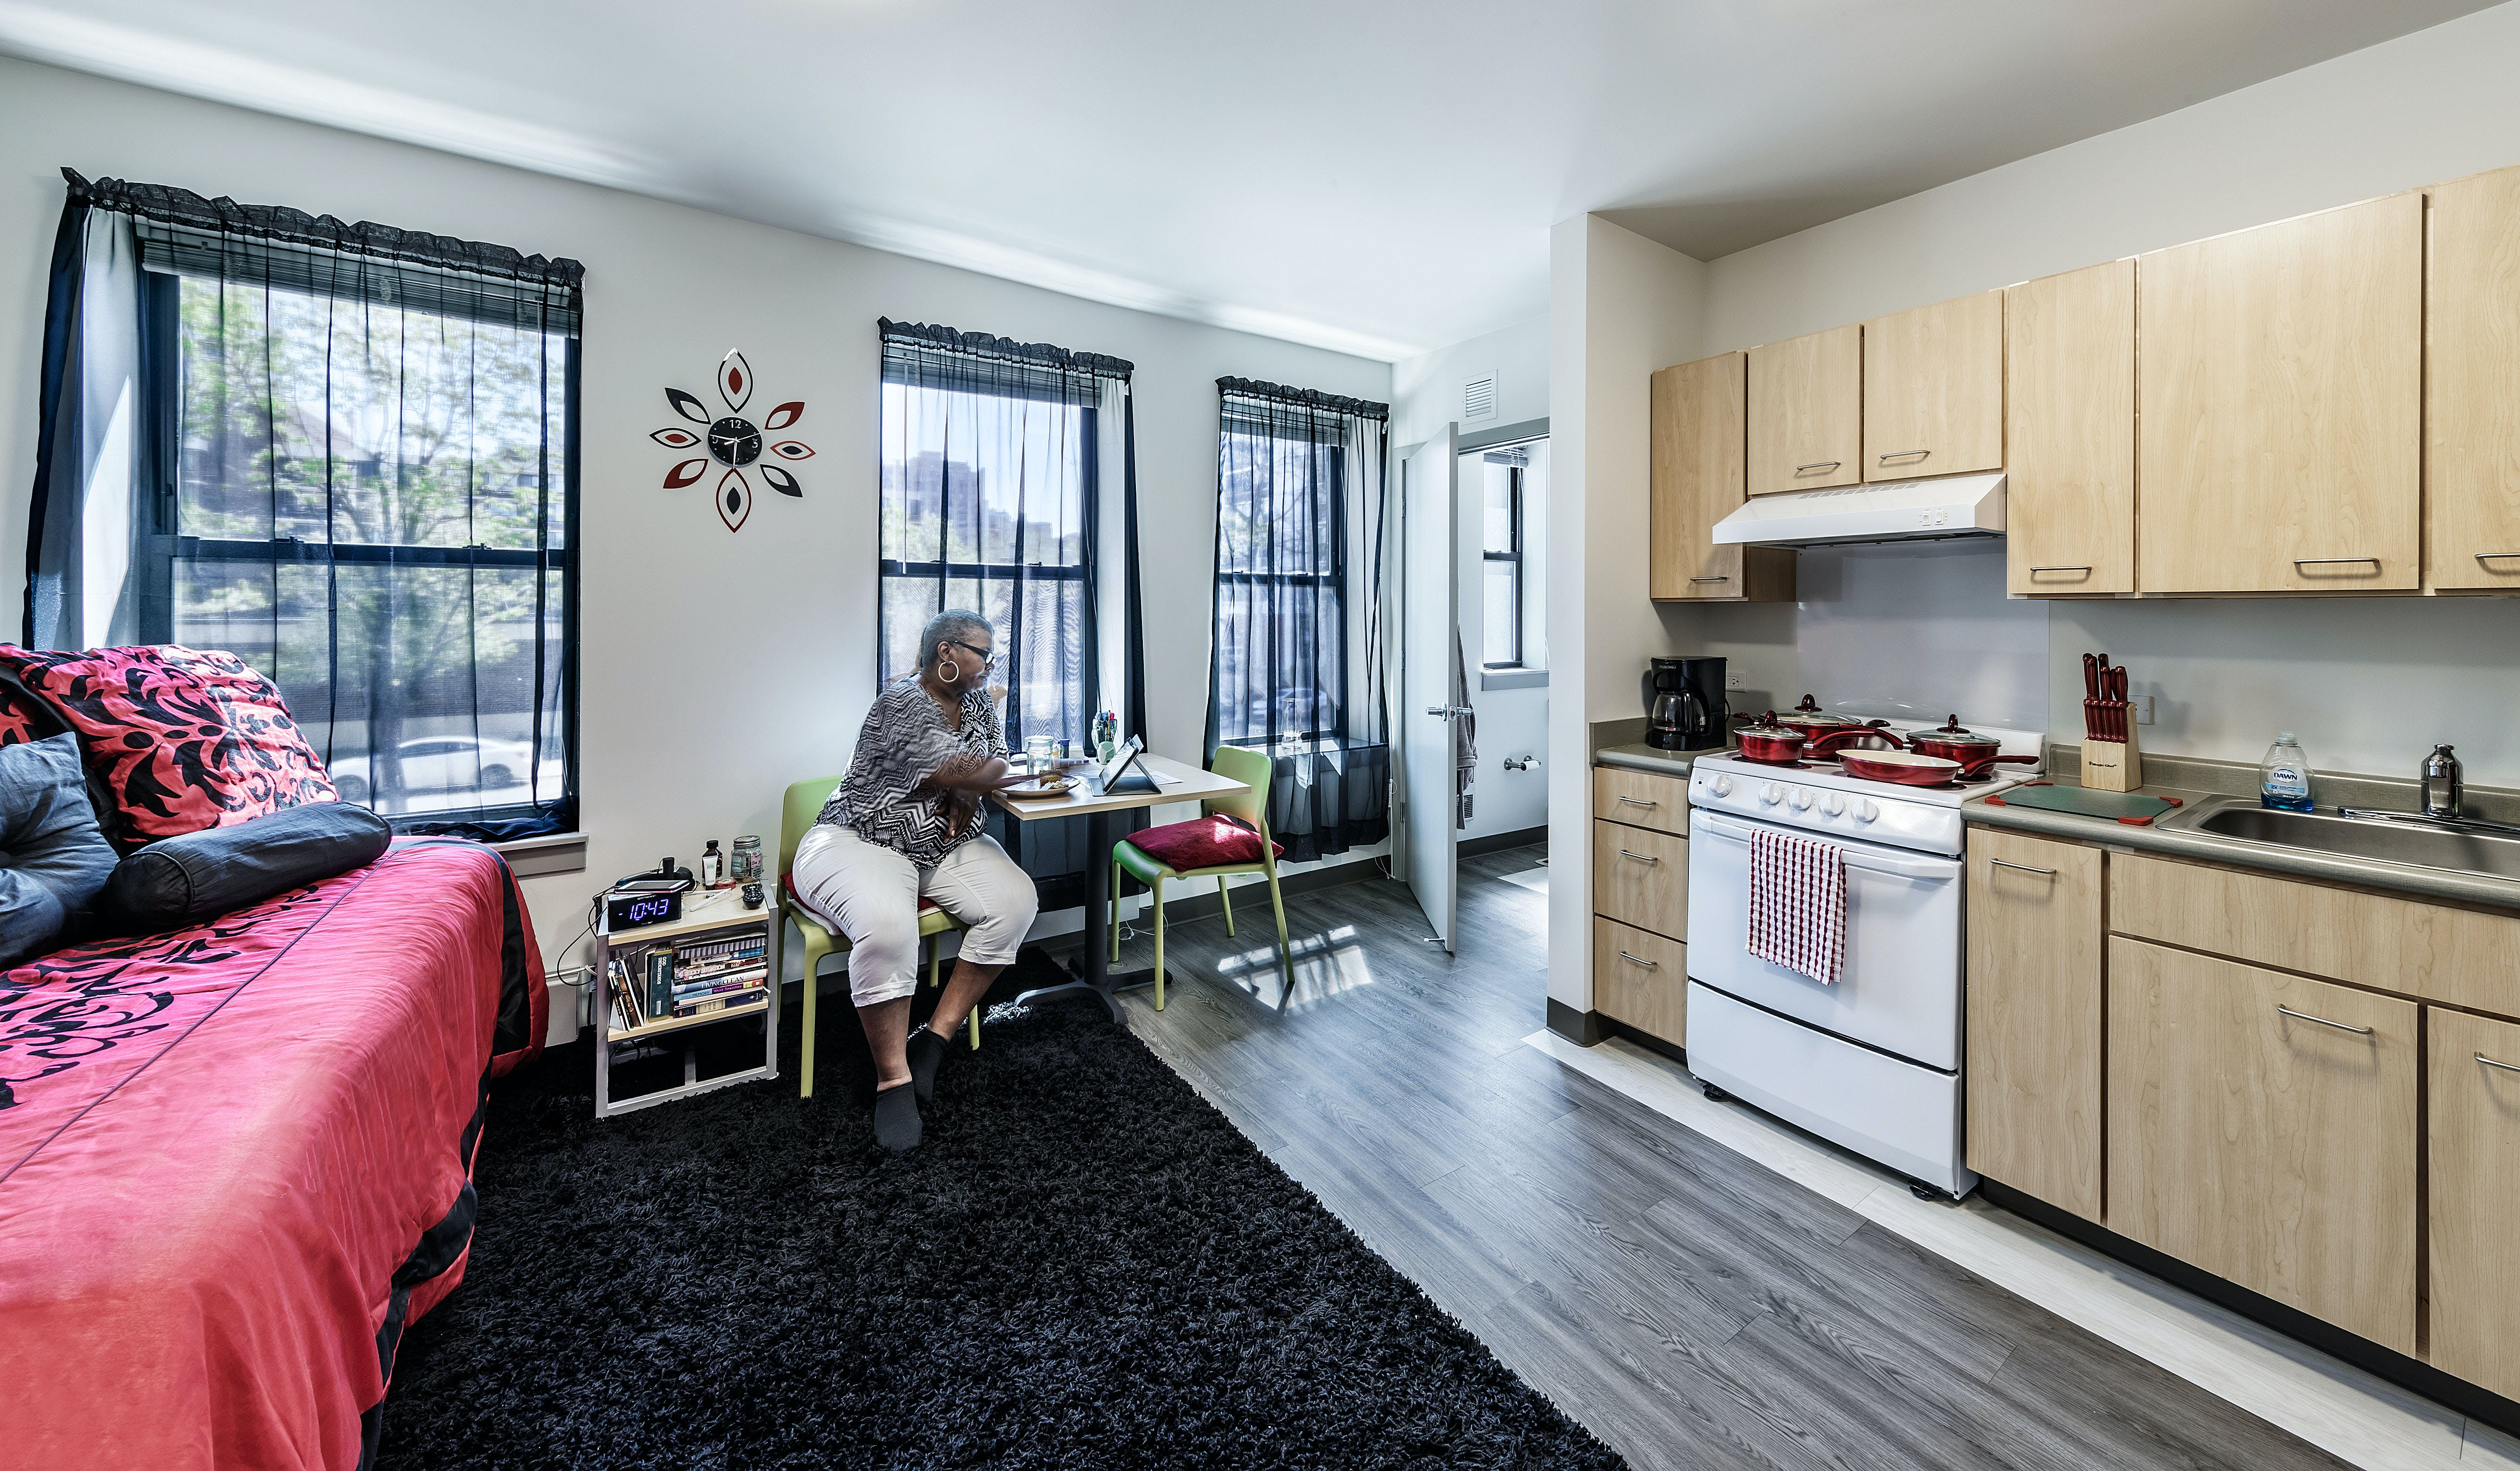 Shared Kitchen/Bathroom Apartments in Multi-family Zones Example 2